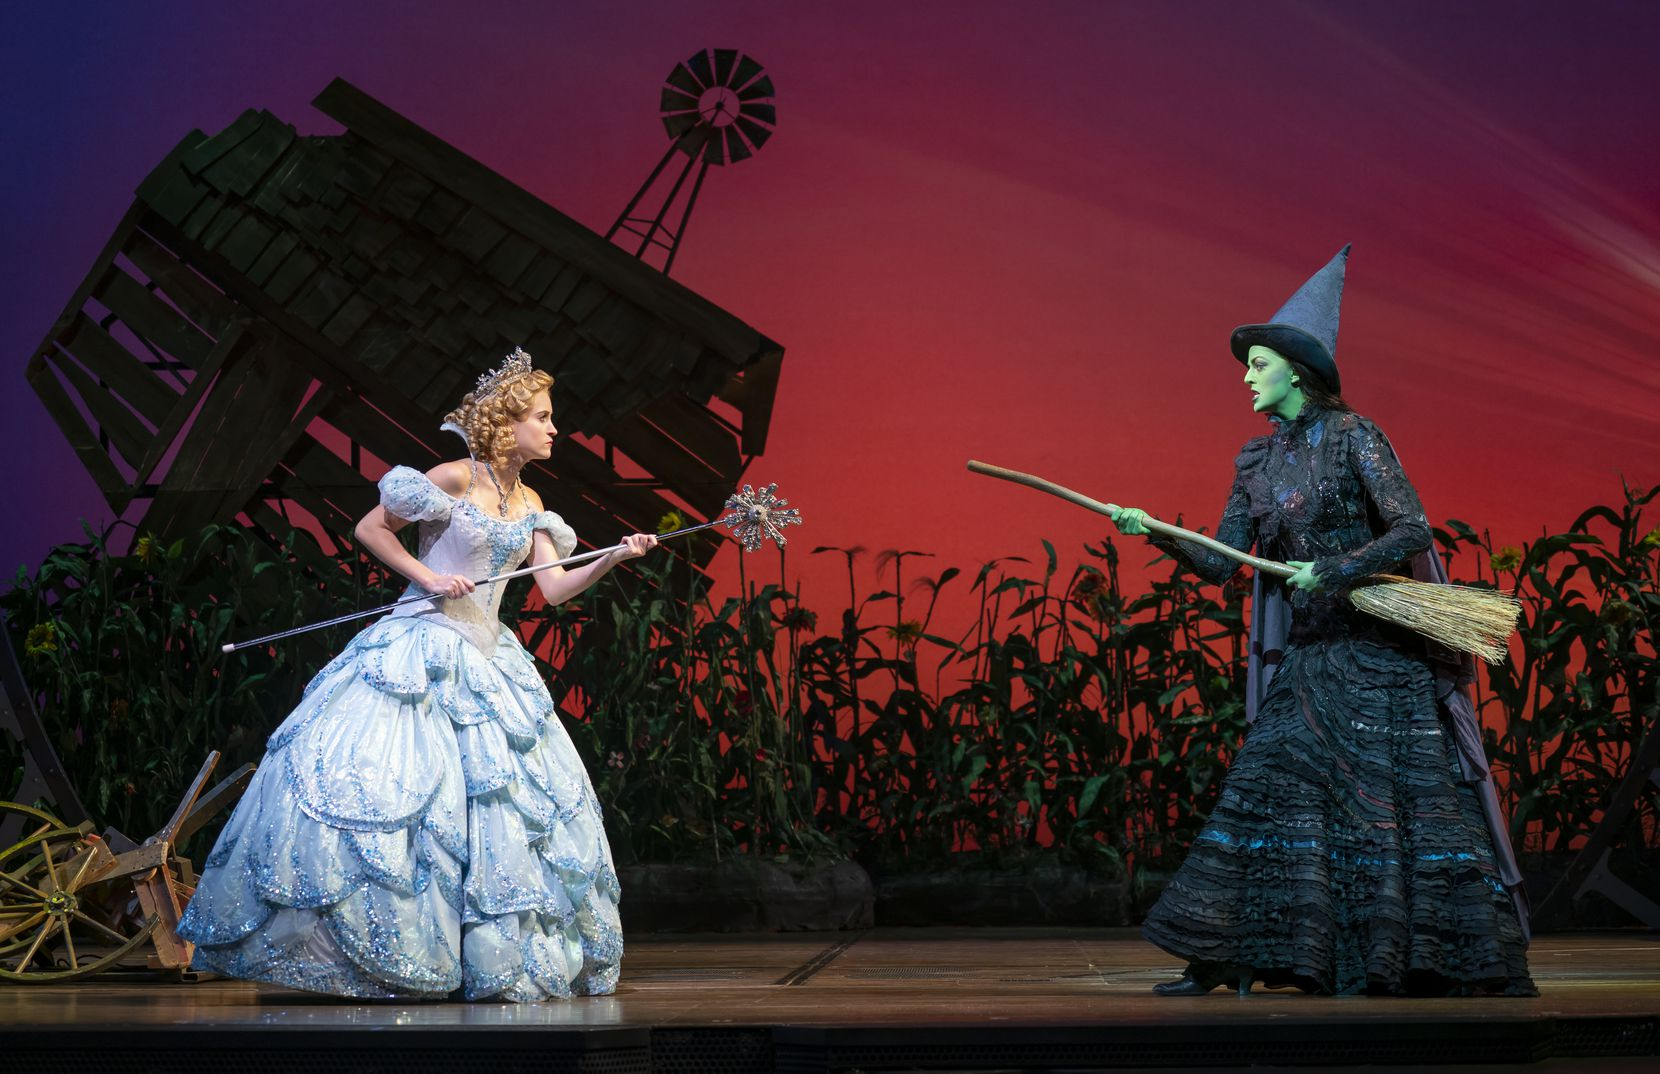 """Allison Bailey and Talia Suskauer in the North American tour of """"Wicked,"""" which opens at Dallas Summer Musicals in August 2021, the first Broadway touring show to go on the road since the pandemic began."""